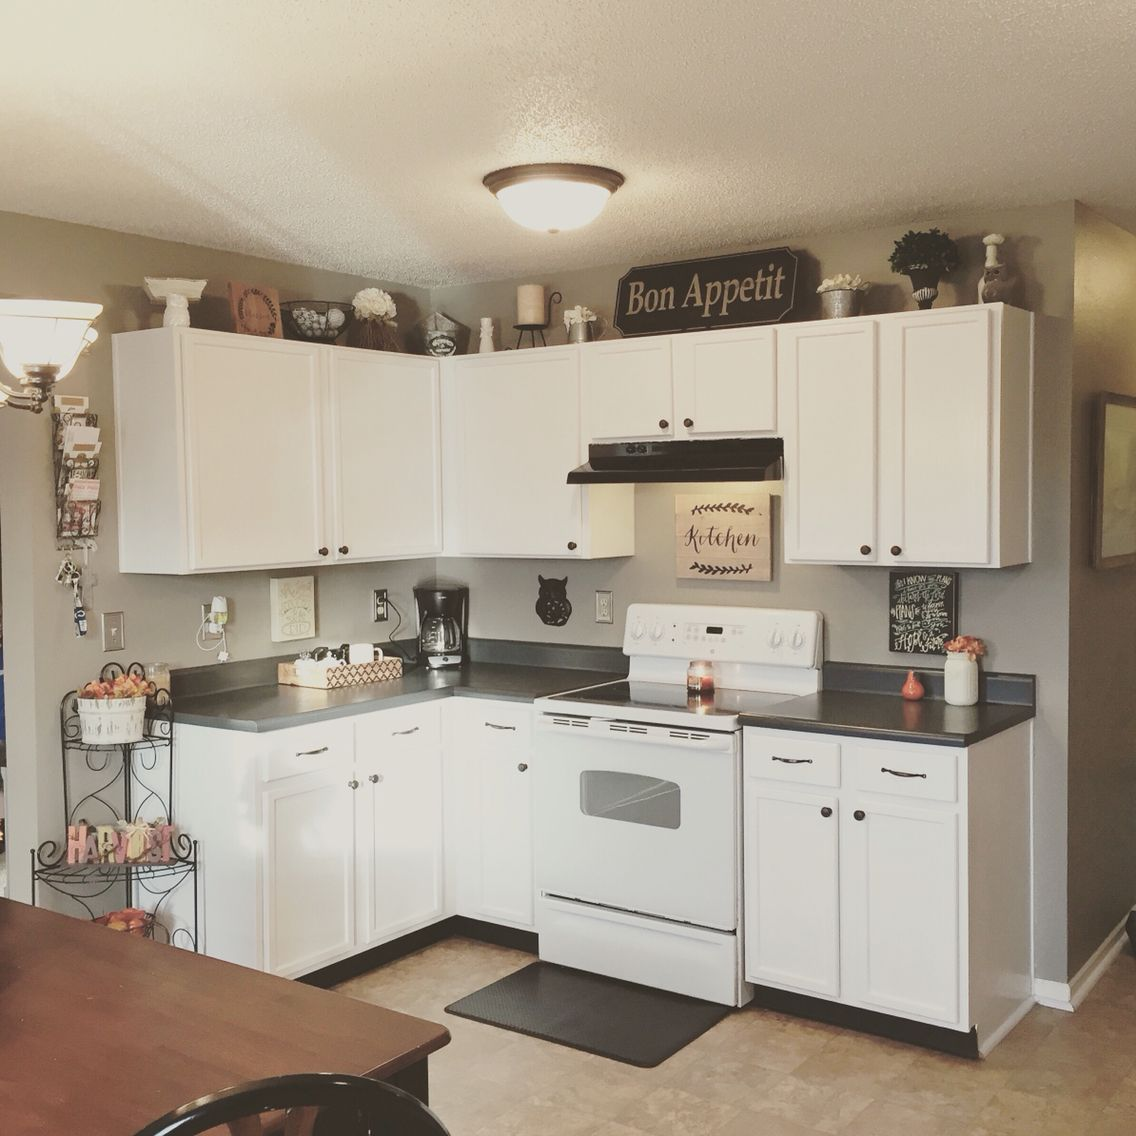 Painted kitchen cabinets with Ace Hardware Cabinet Door